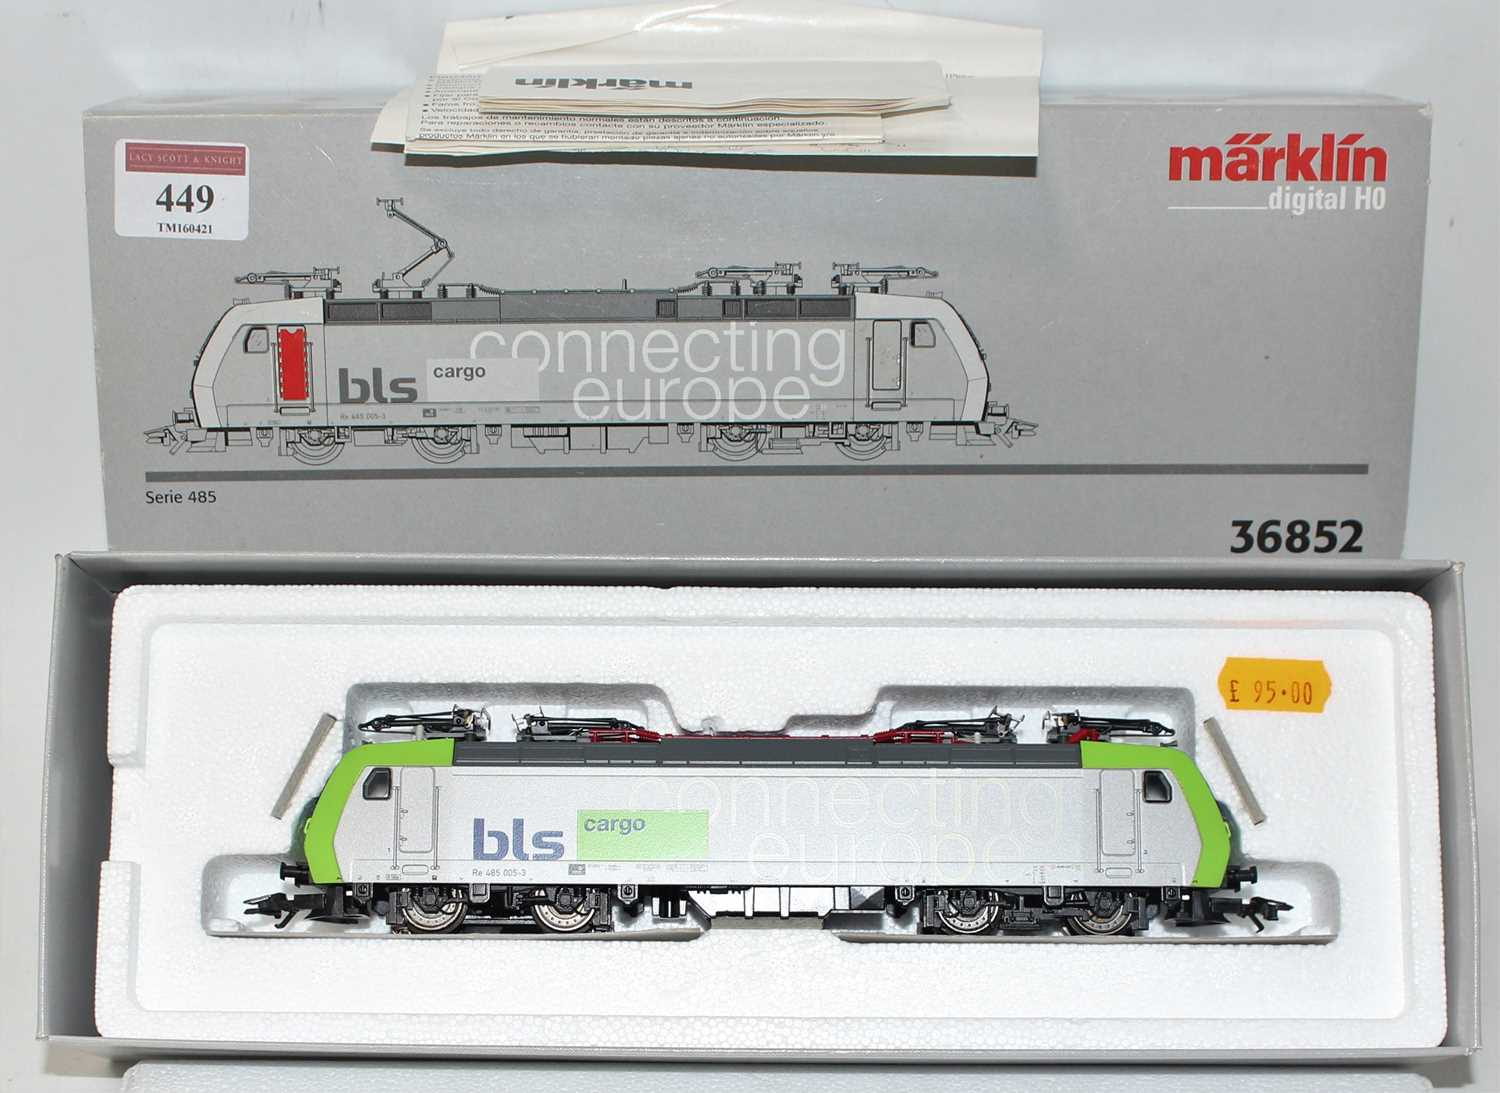 A Marklin Digital H0 model No.36852 BLS Cargo series 485 electric locomotive, housed in the original